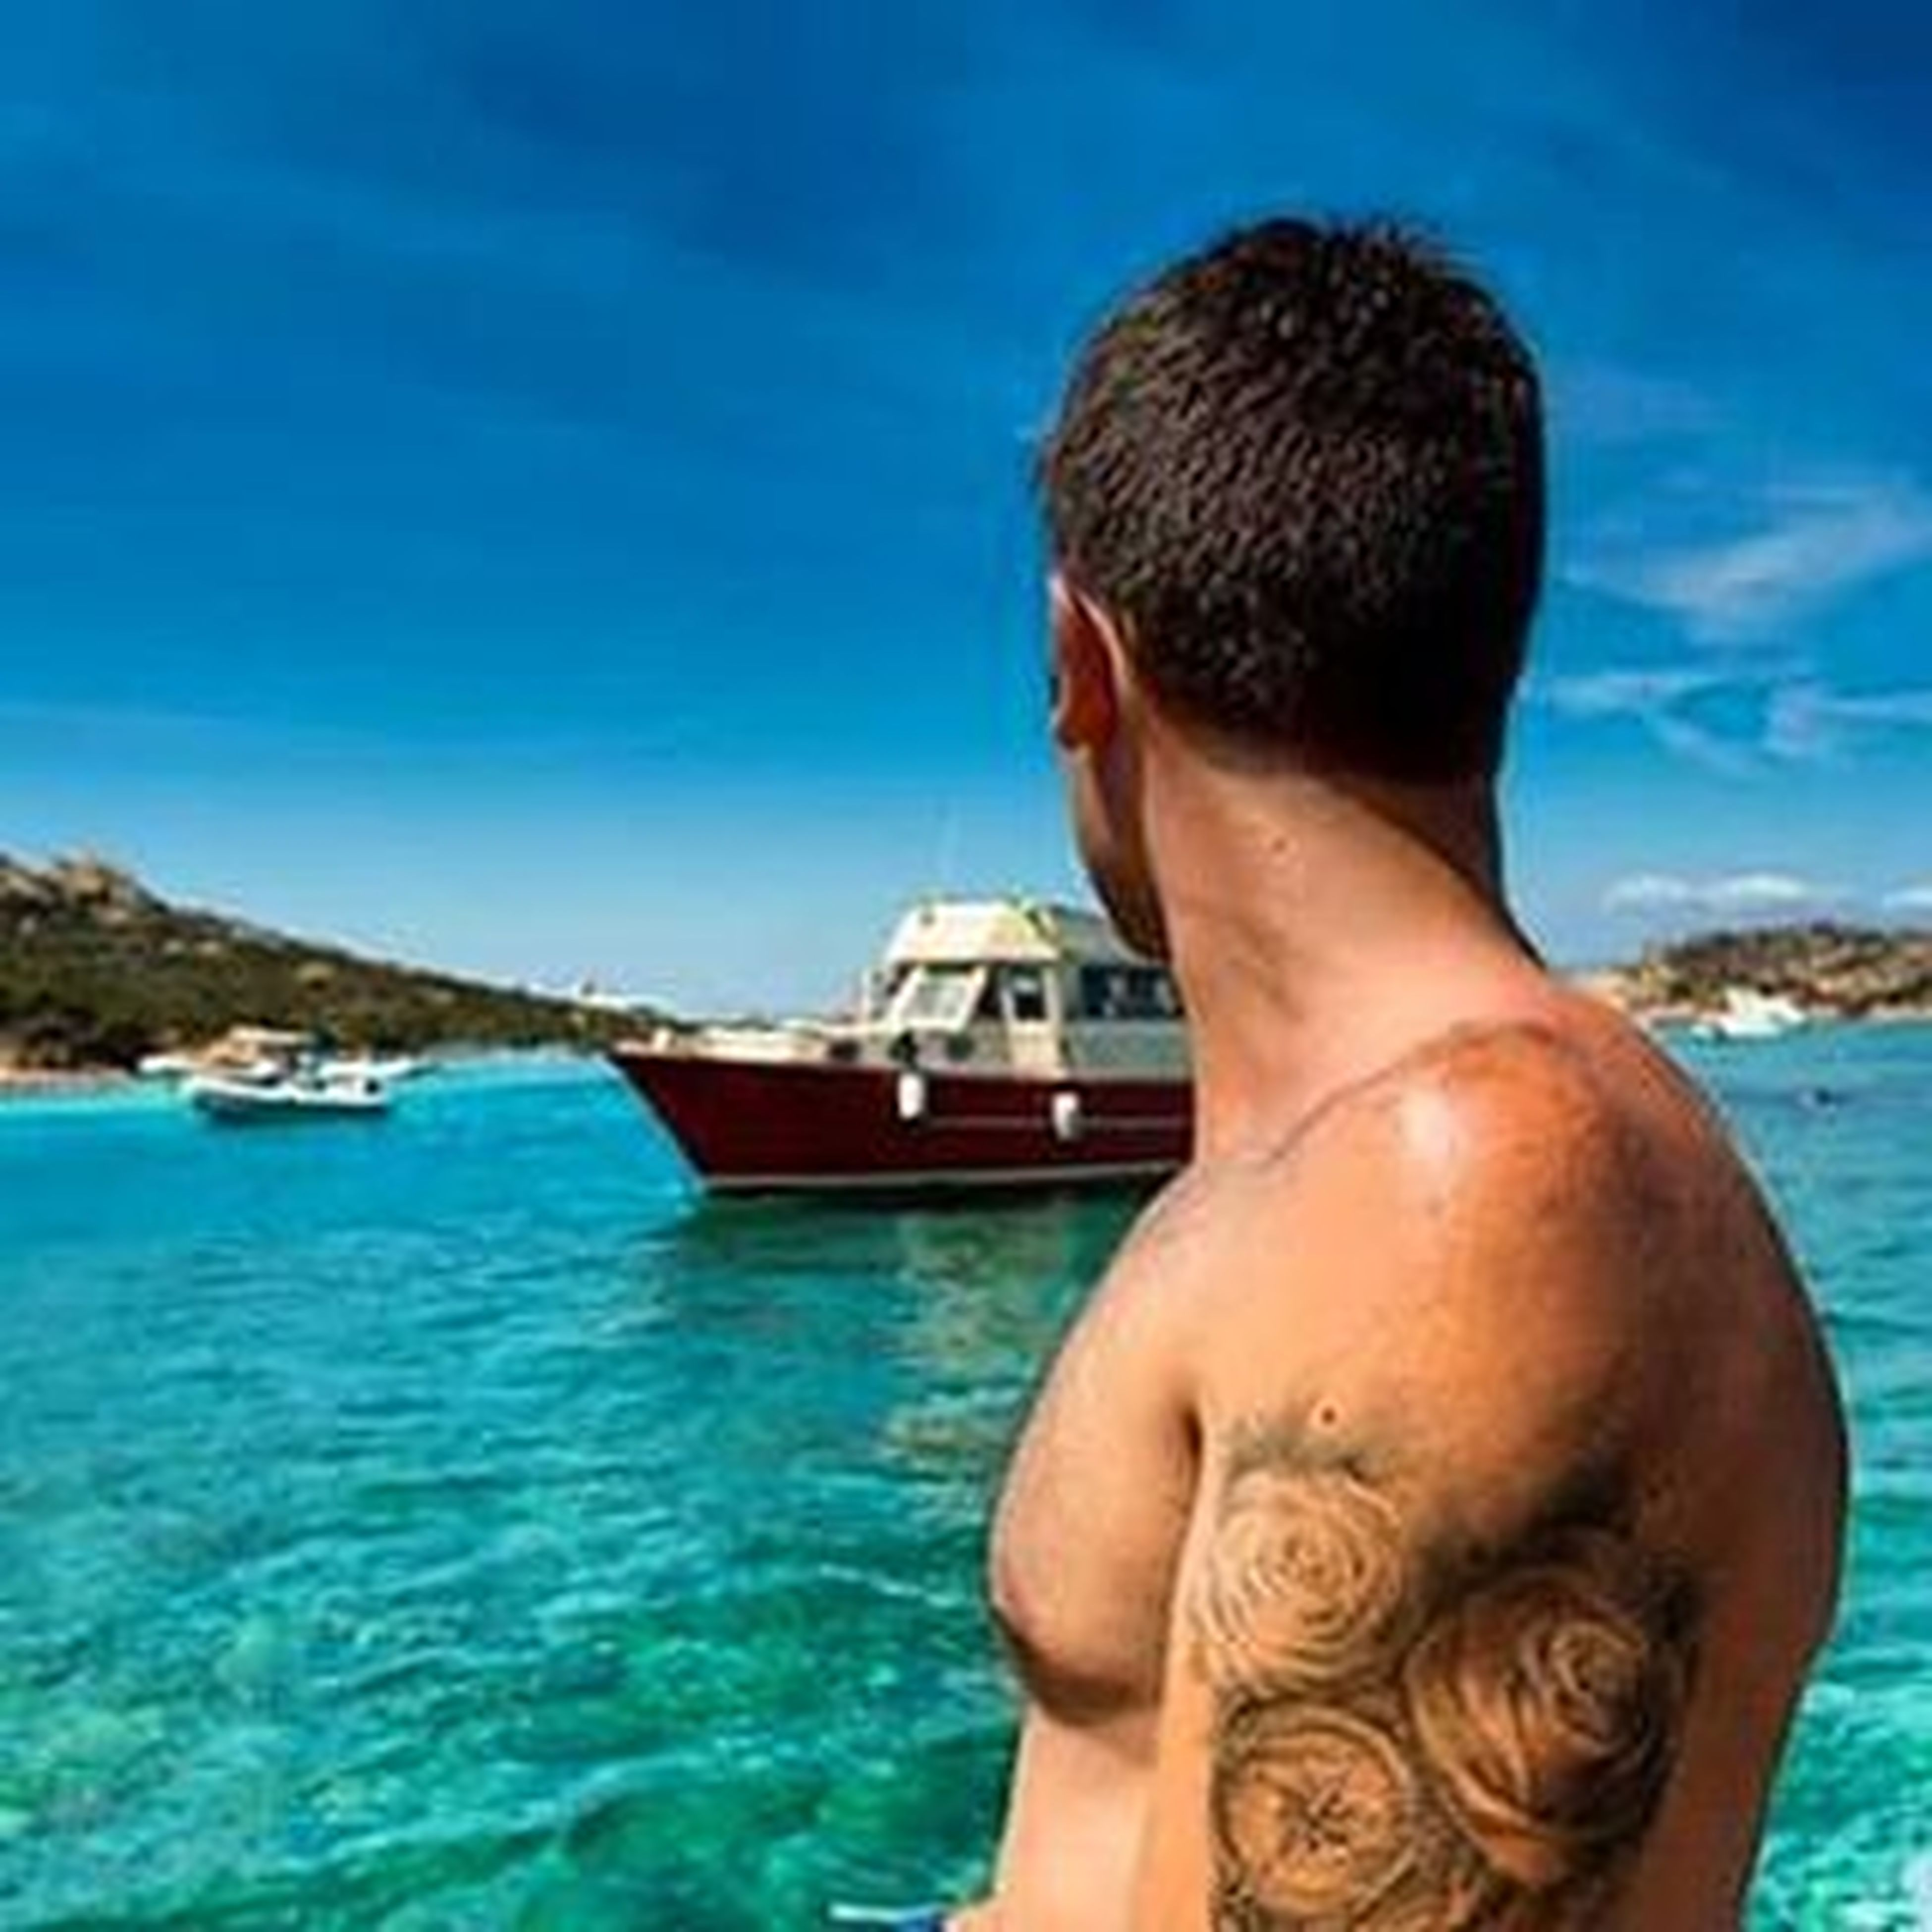 water, blue, lifestyles, sea, leisure activity, swimming pool, sky, waterfront, young adult, shirtless, sunlight, vacations, day, turquoise colored, outdoors, person, rippled, nautical vessel